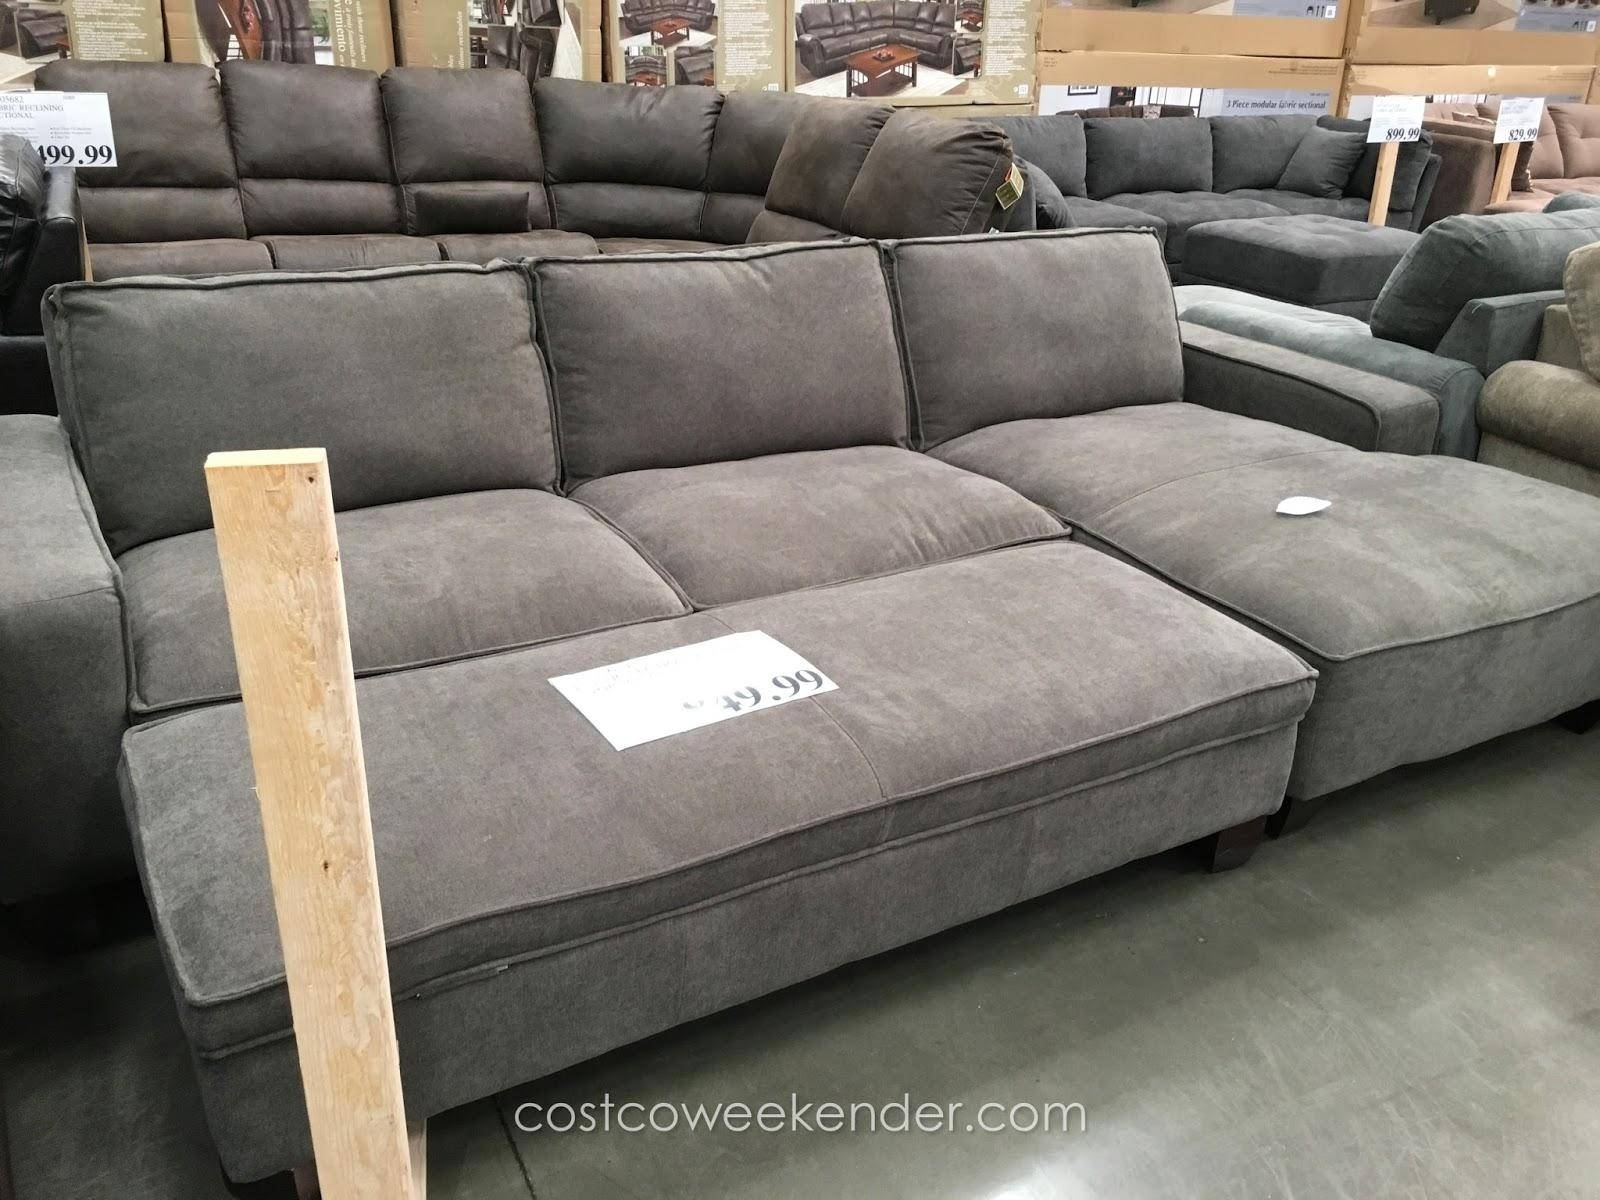 15 Photos Berkline Sectional Sofa | Sofa Ideas throughout Berkline Sectional Sofas (Image 4 of 15)